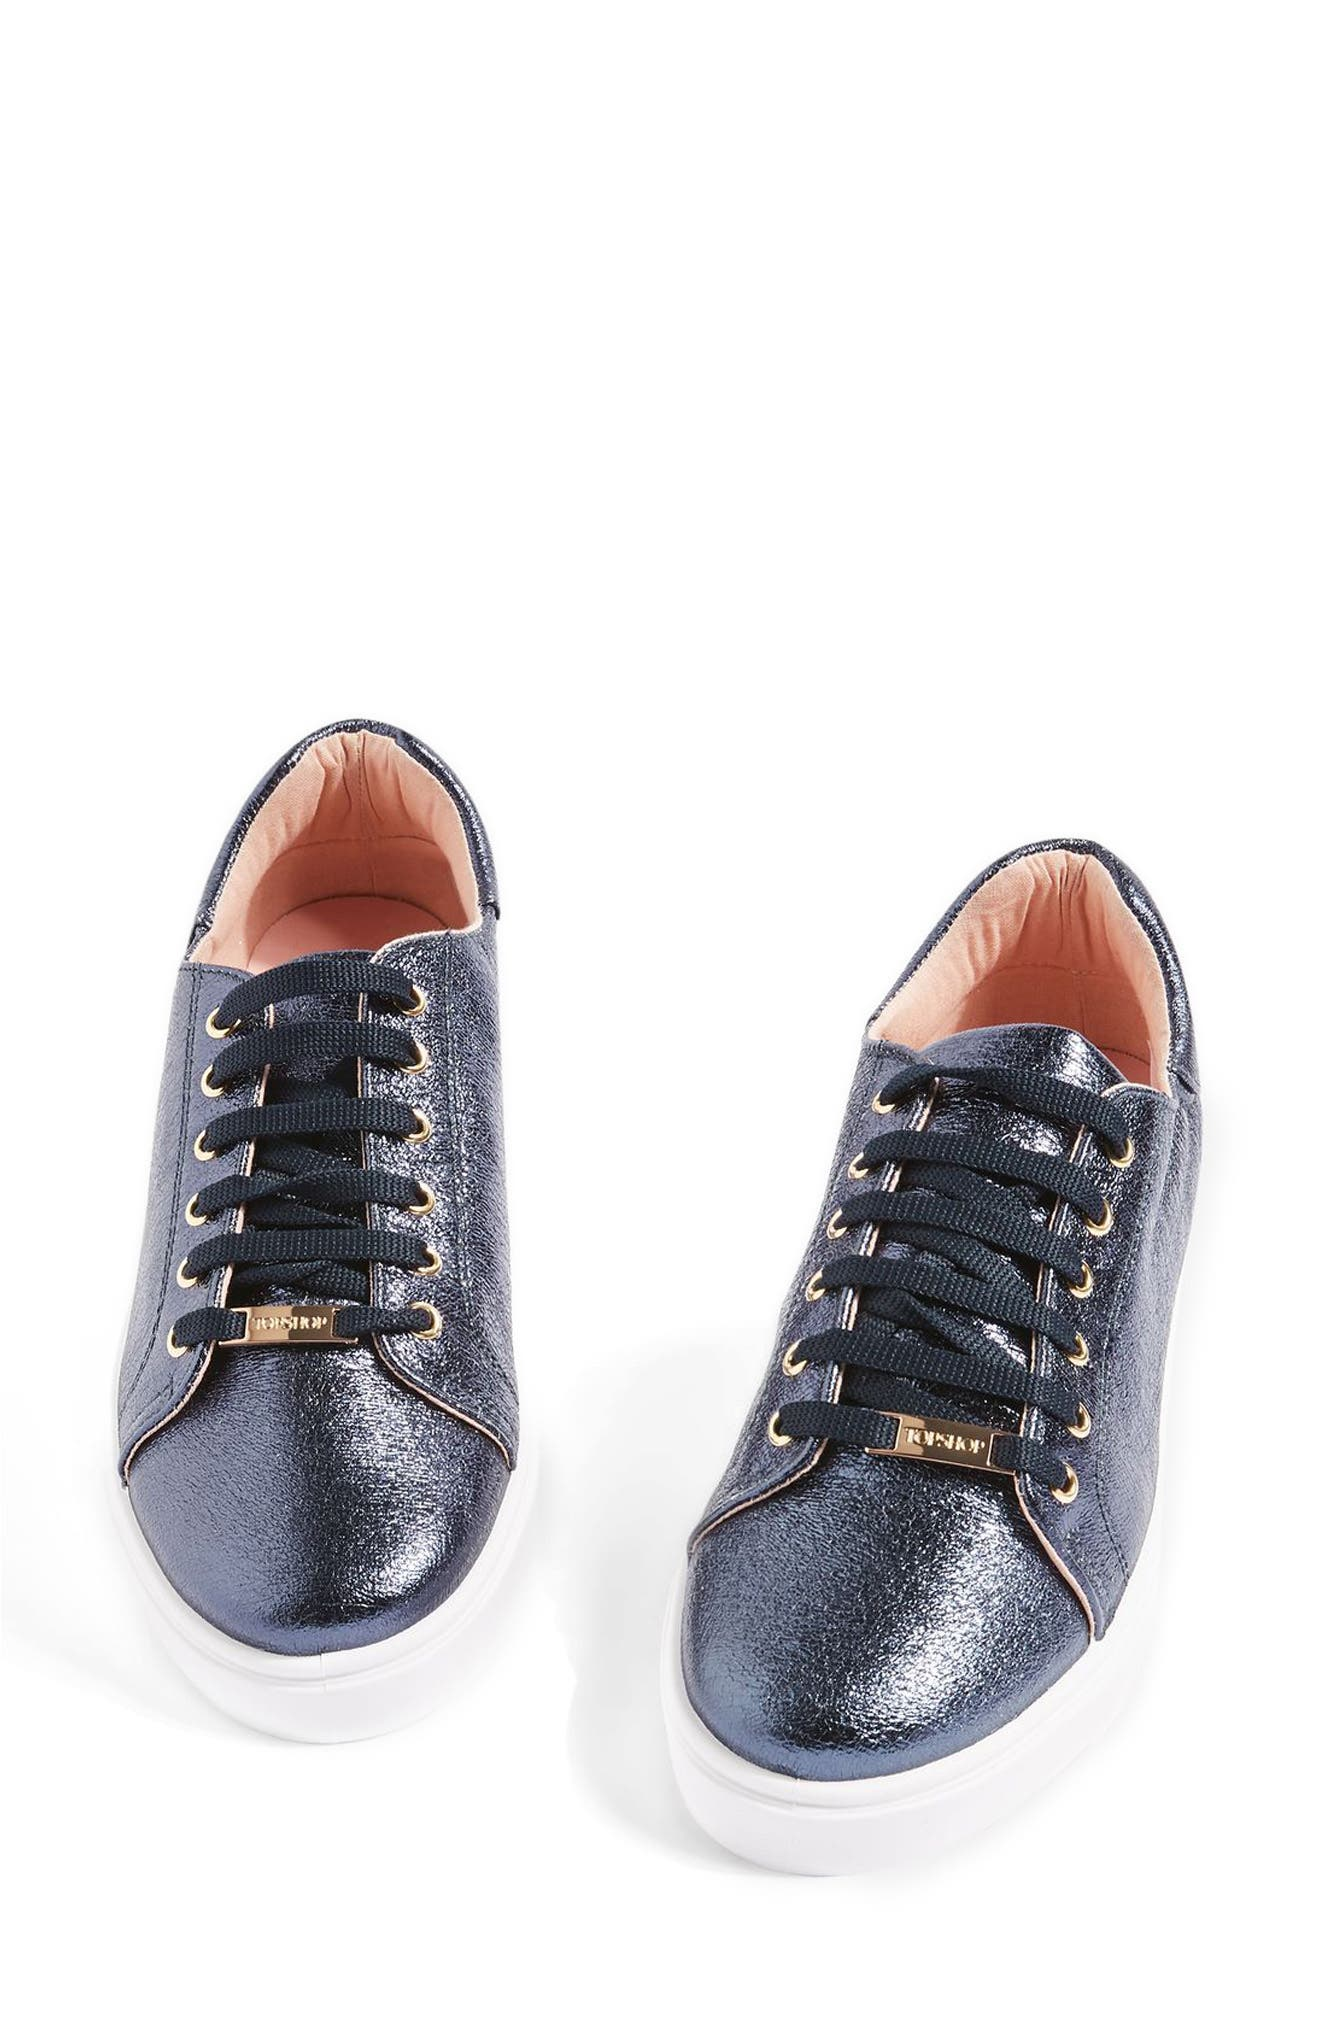 Alternate Image 1 Selected - Topshop Cosmo Metallic Lace-Up Sneaker (Women)